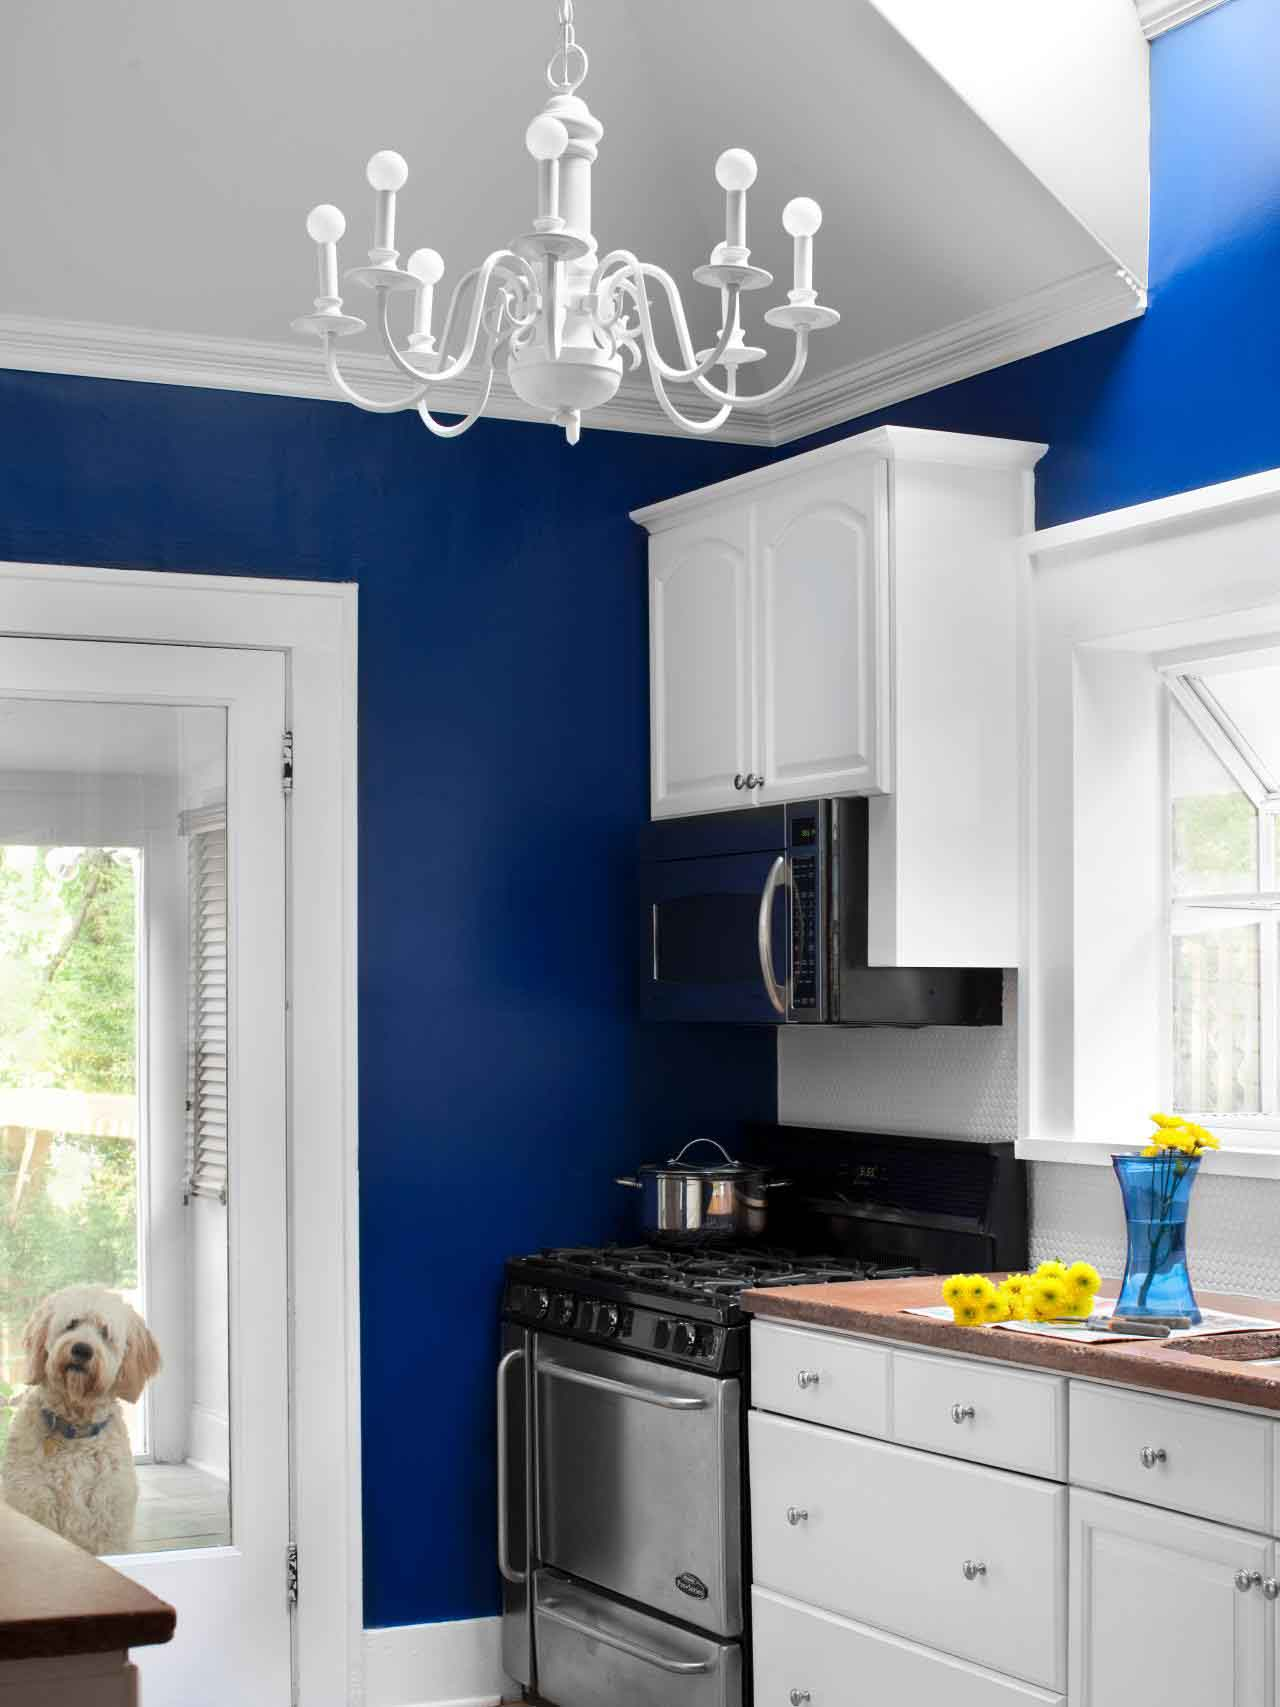 Inspiring Blue Kitchen Ideas To Renovate Your Kitchen | LivingHours